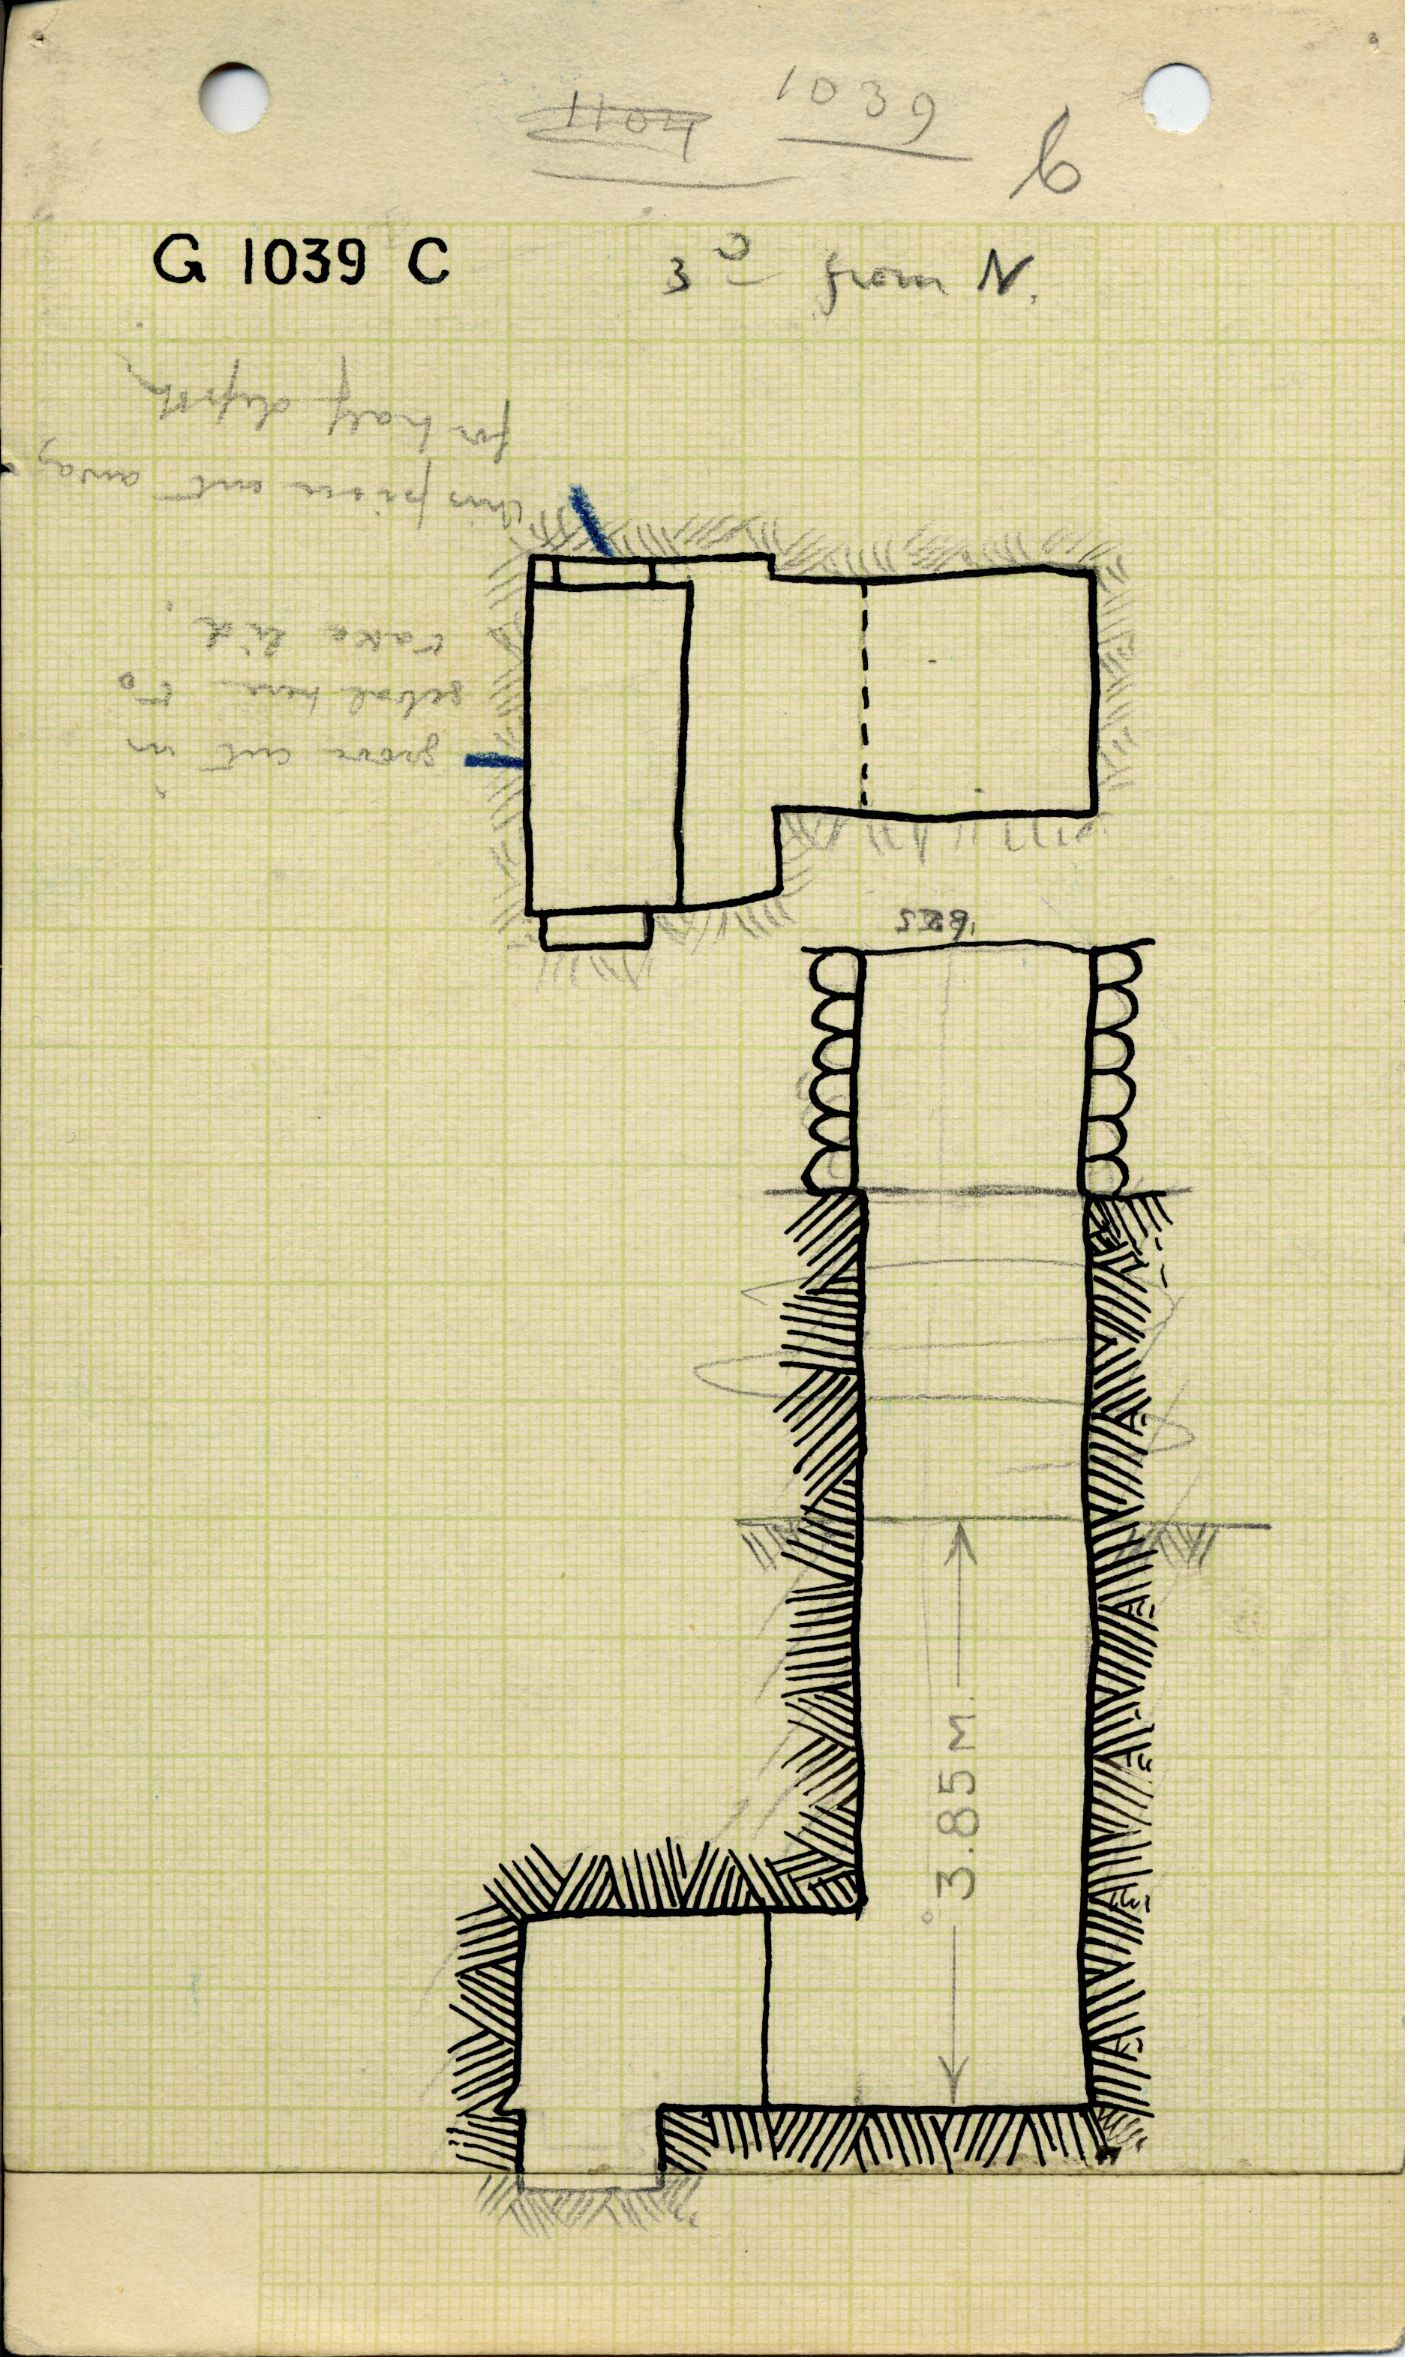 Maps and plans: G 1039, Shaft C